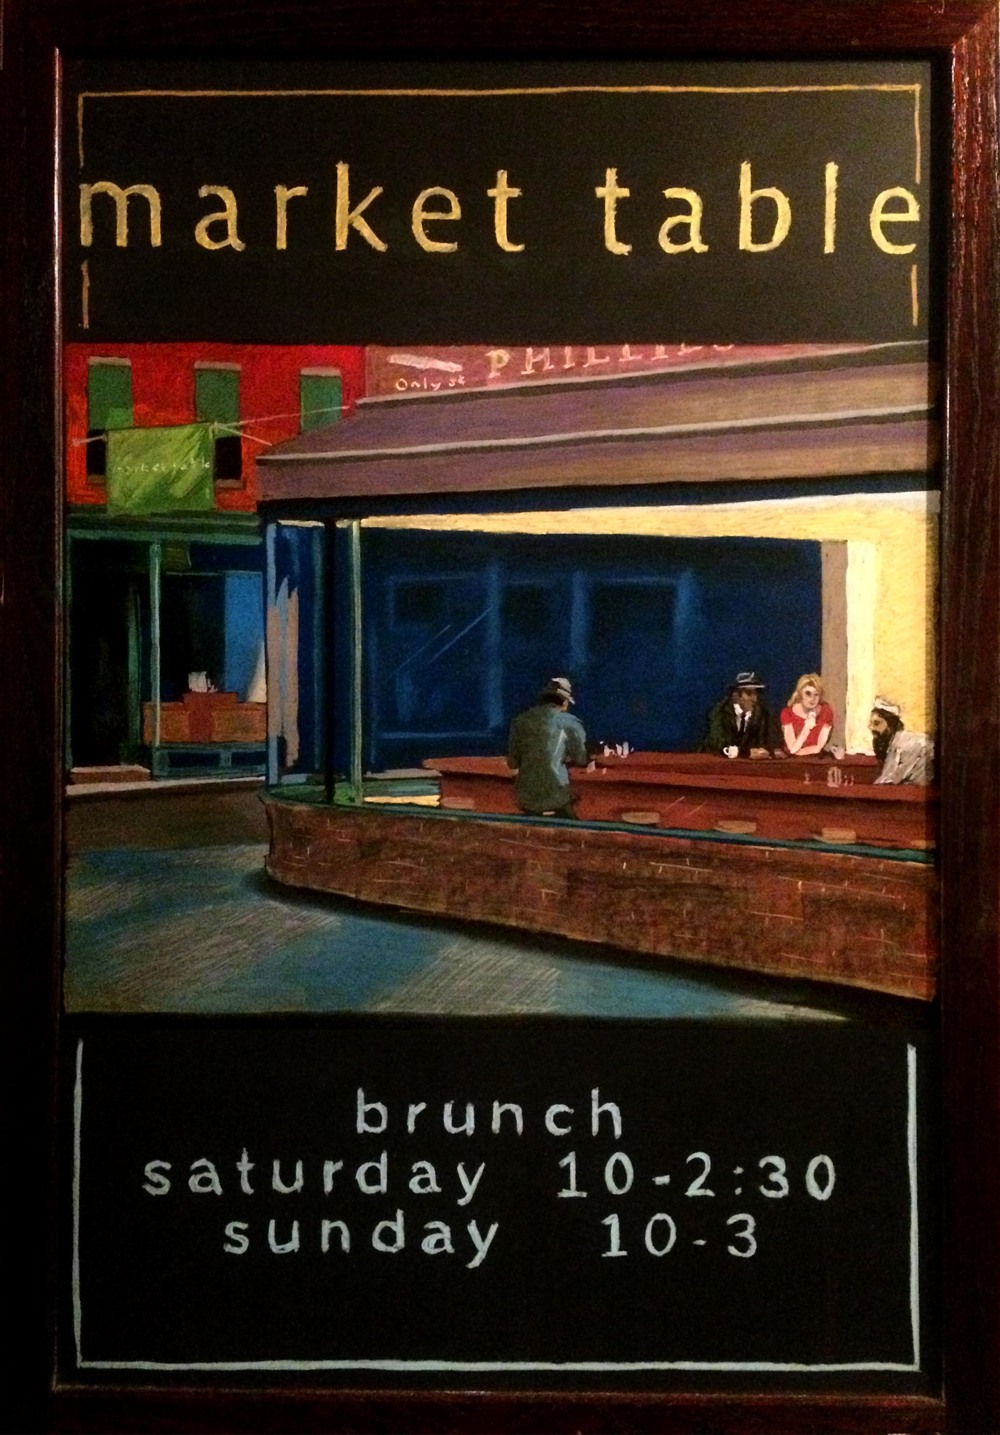 MT brunch nighthawks.jpg